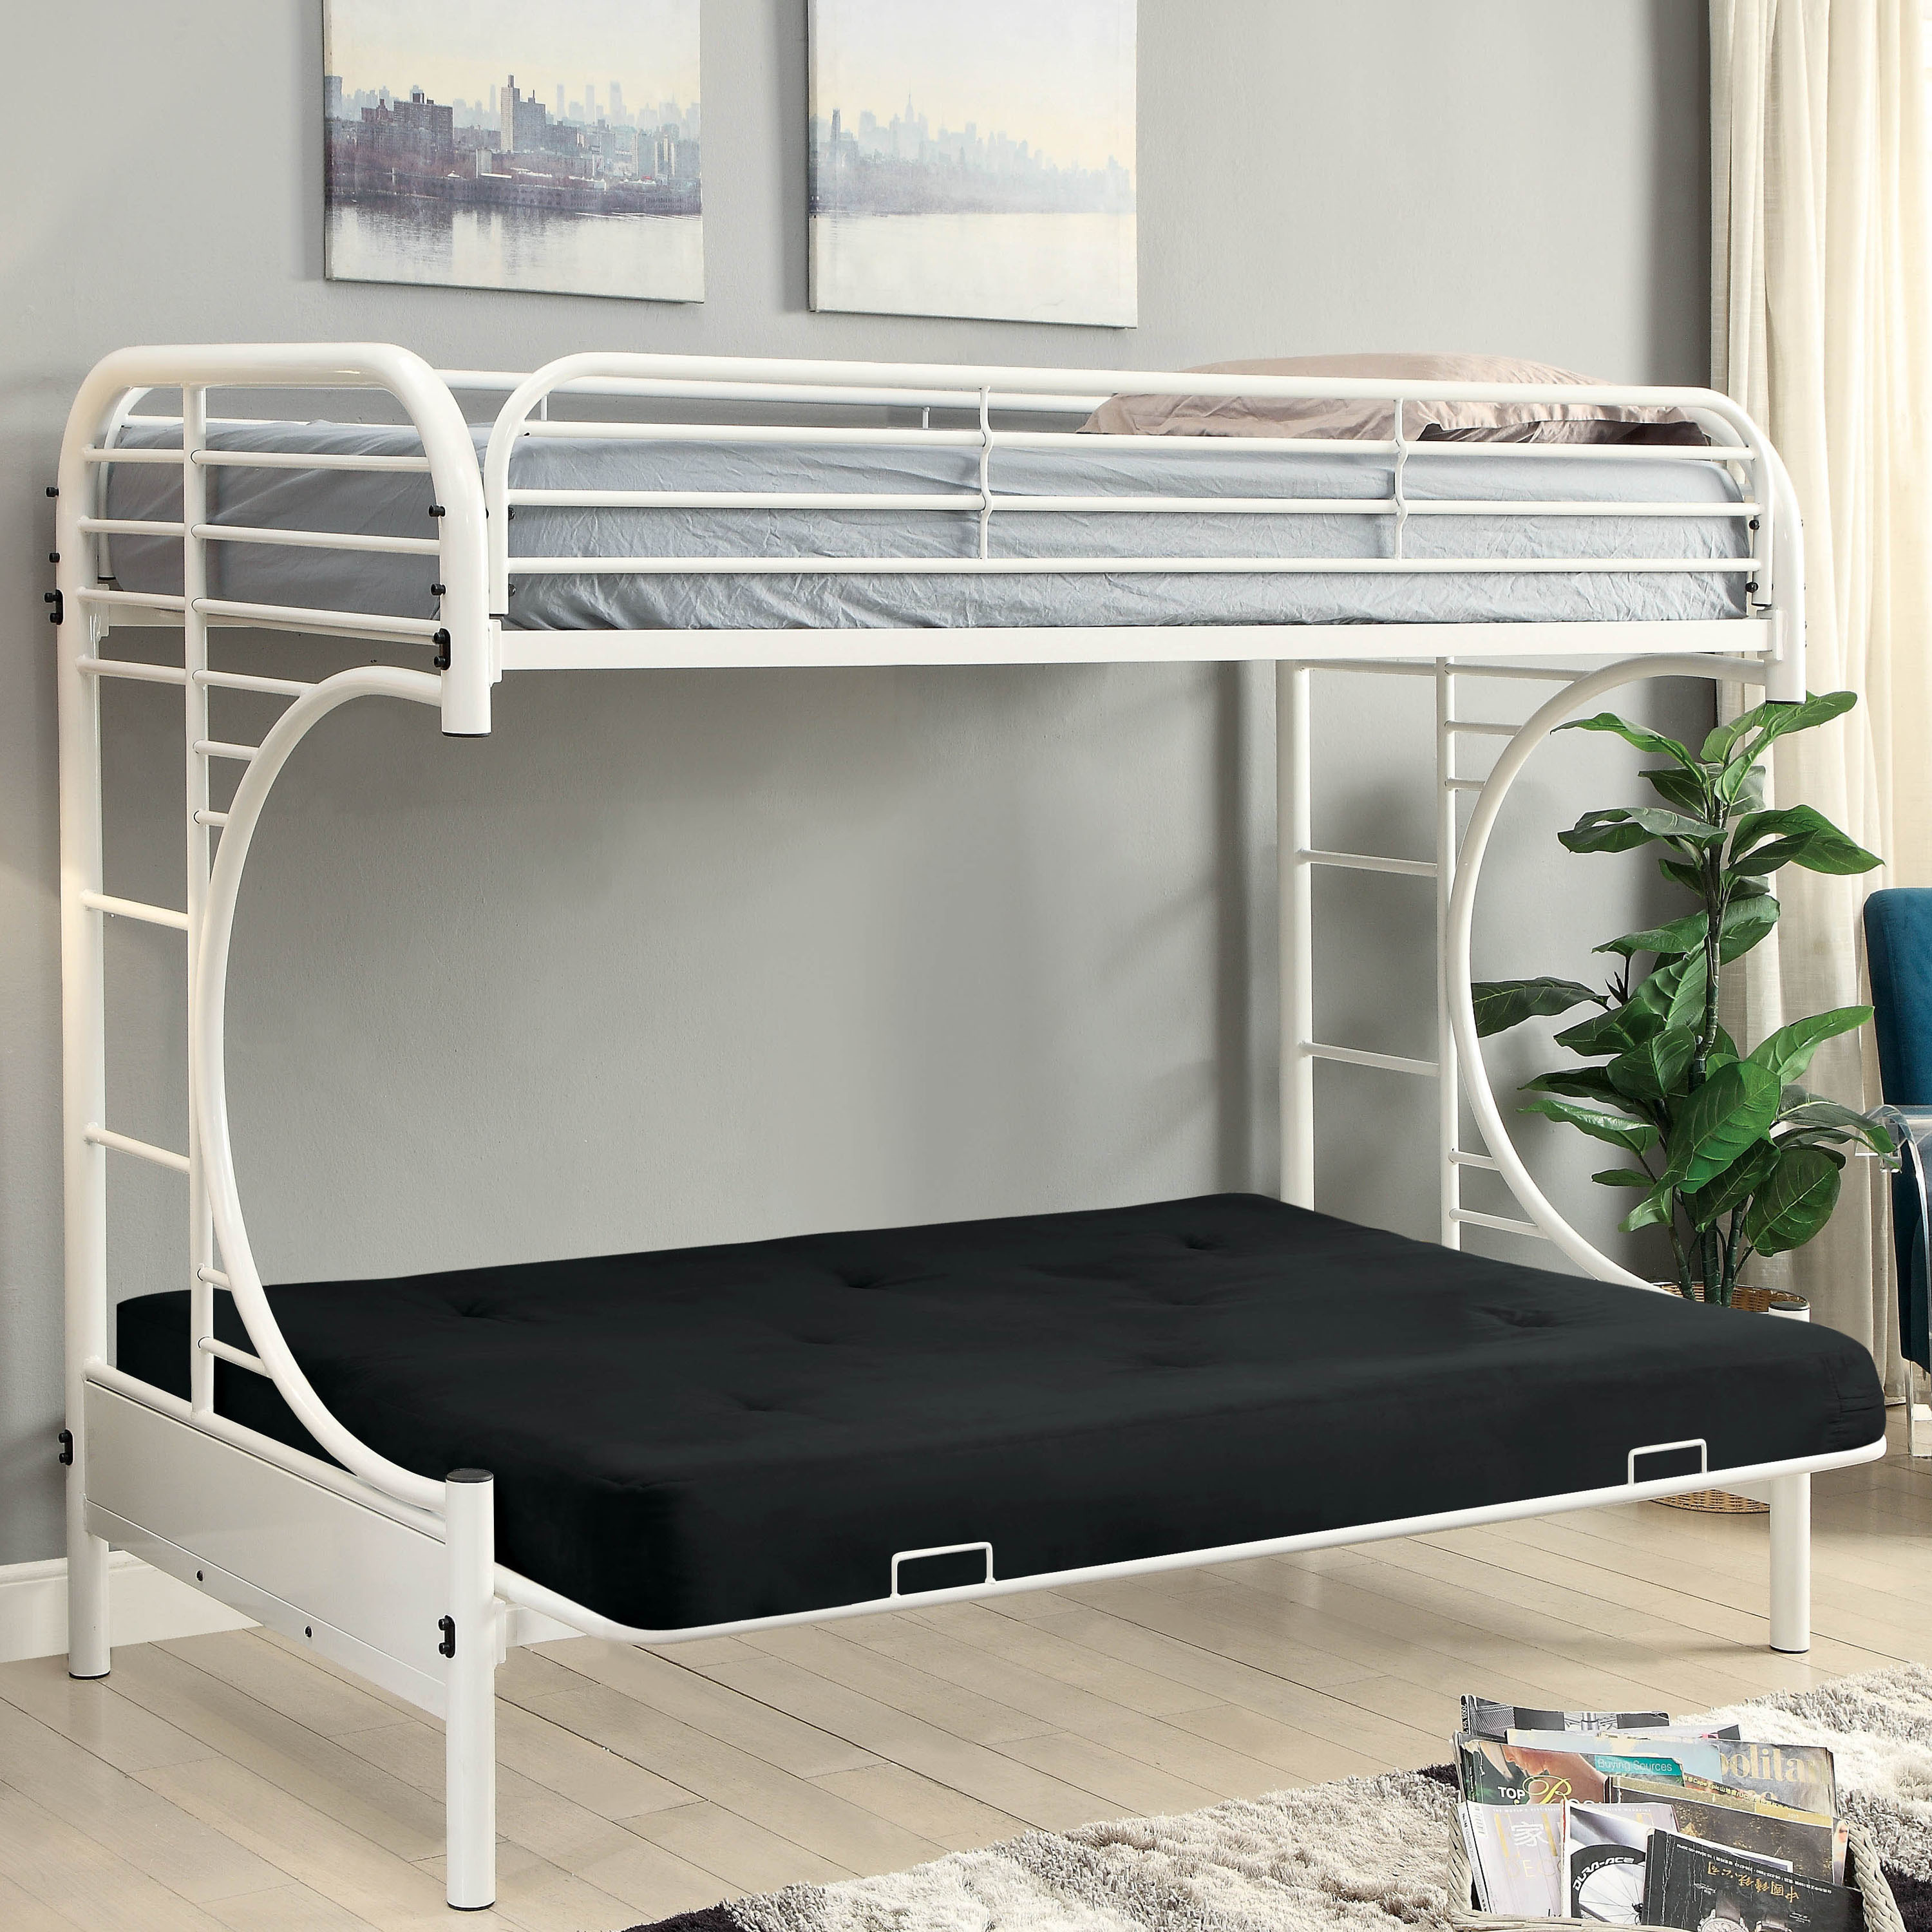 base c divan beds htm bed sticker futon futons ss day buckingham select superior next img double delivery a comfort